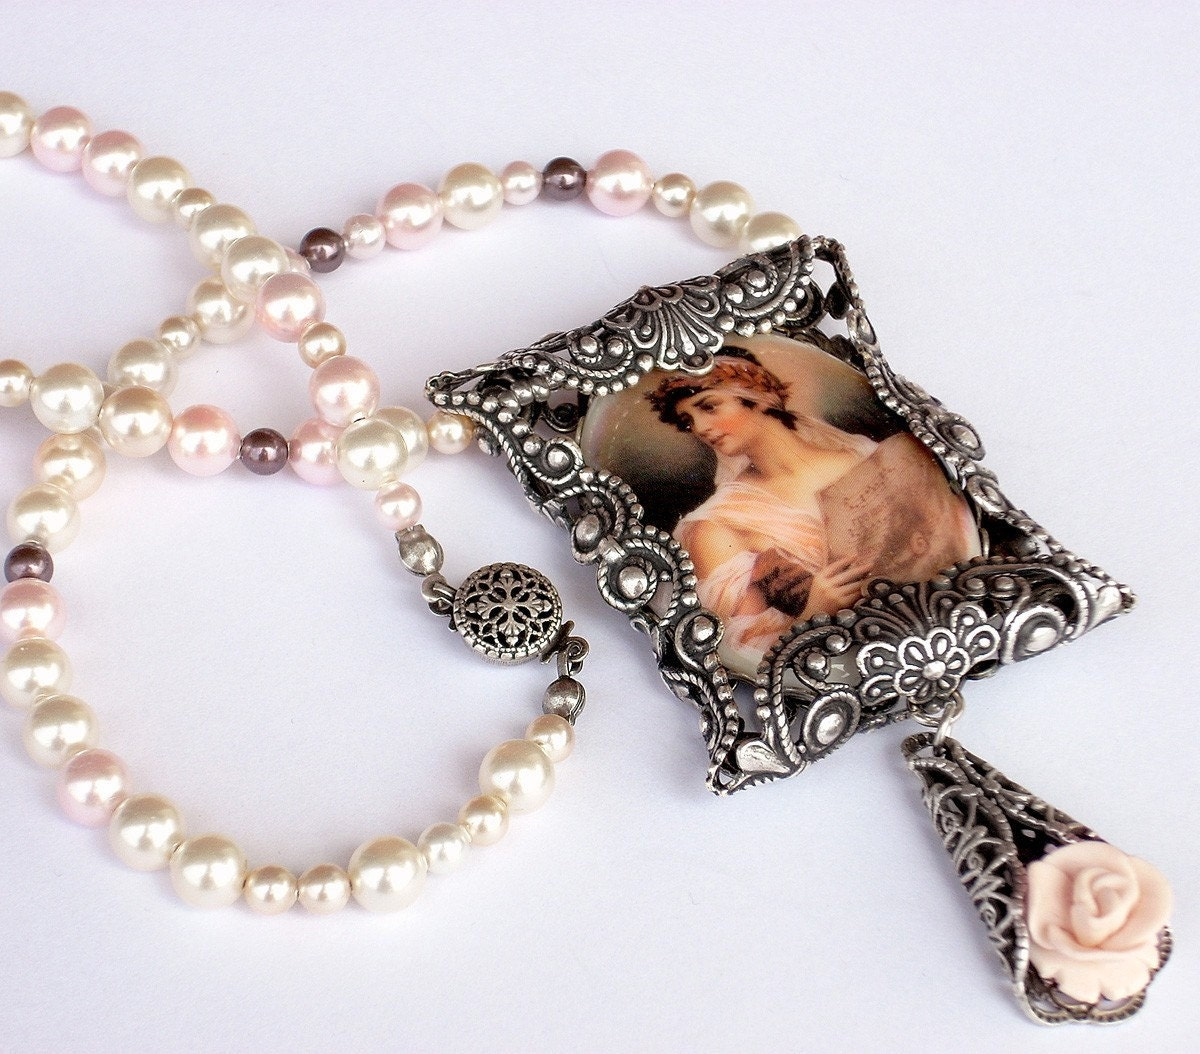 Victorian Pearl Necklace - Pink Porcelain Cabochon and Swarovski Pearls - Peach Rosaline - Ancient Greek, Roman - Baroque - Rose